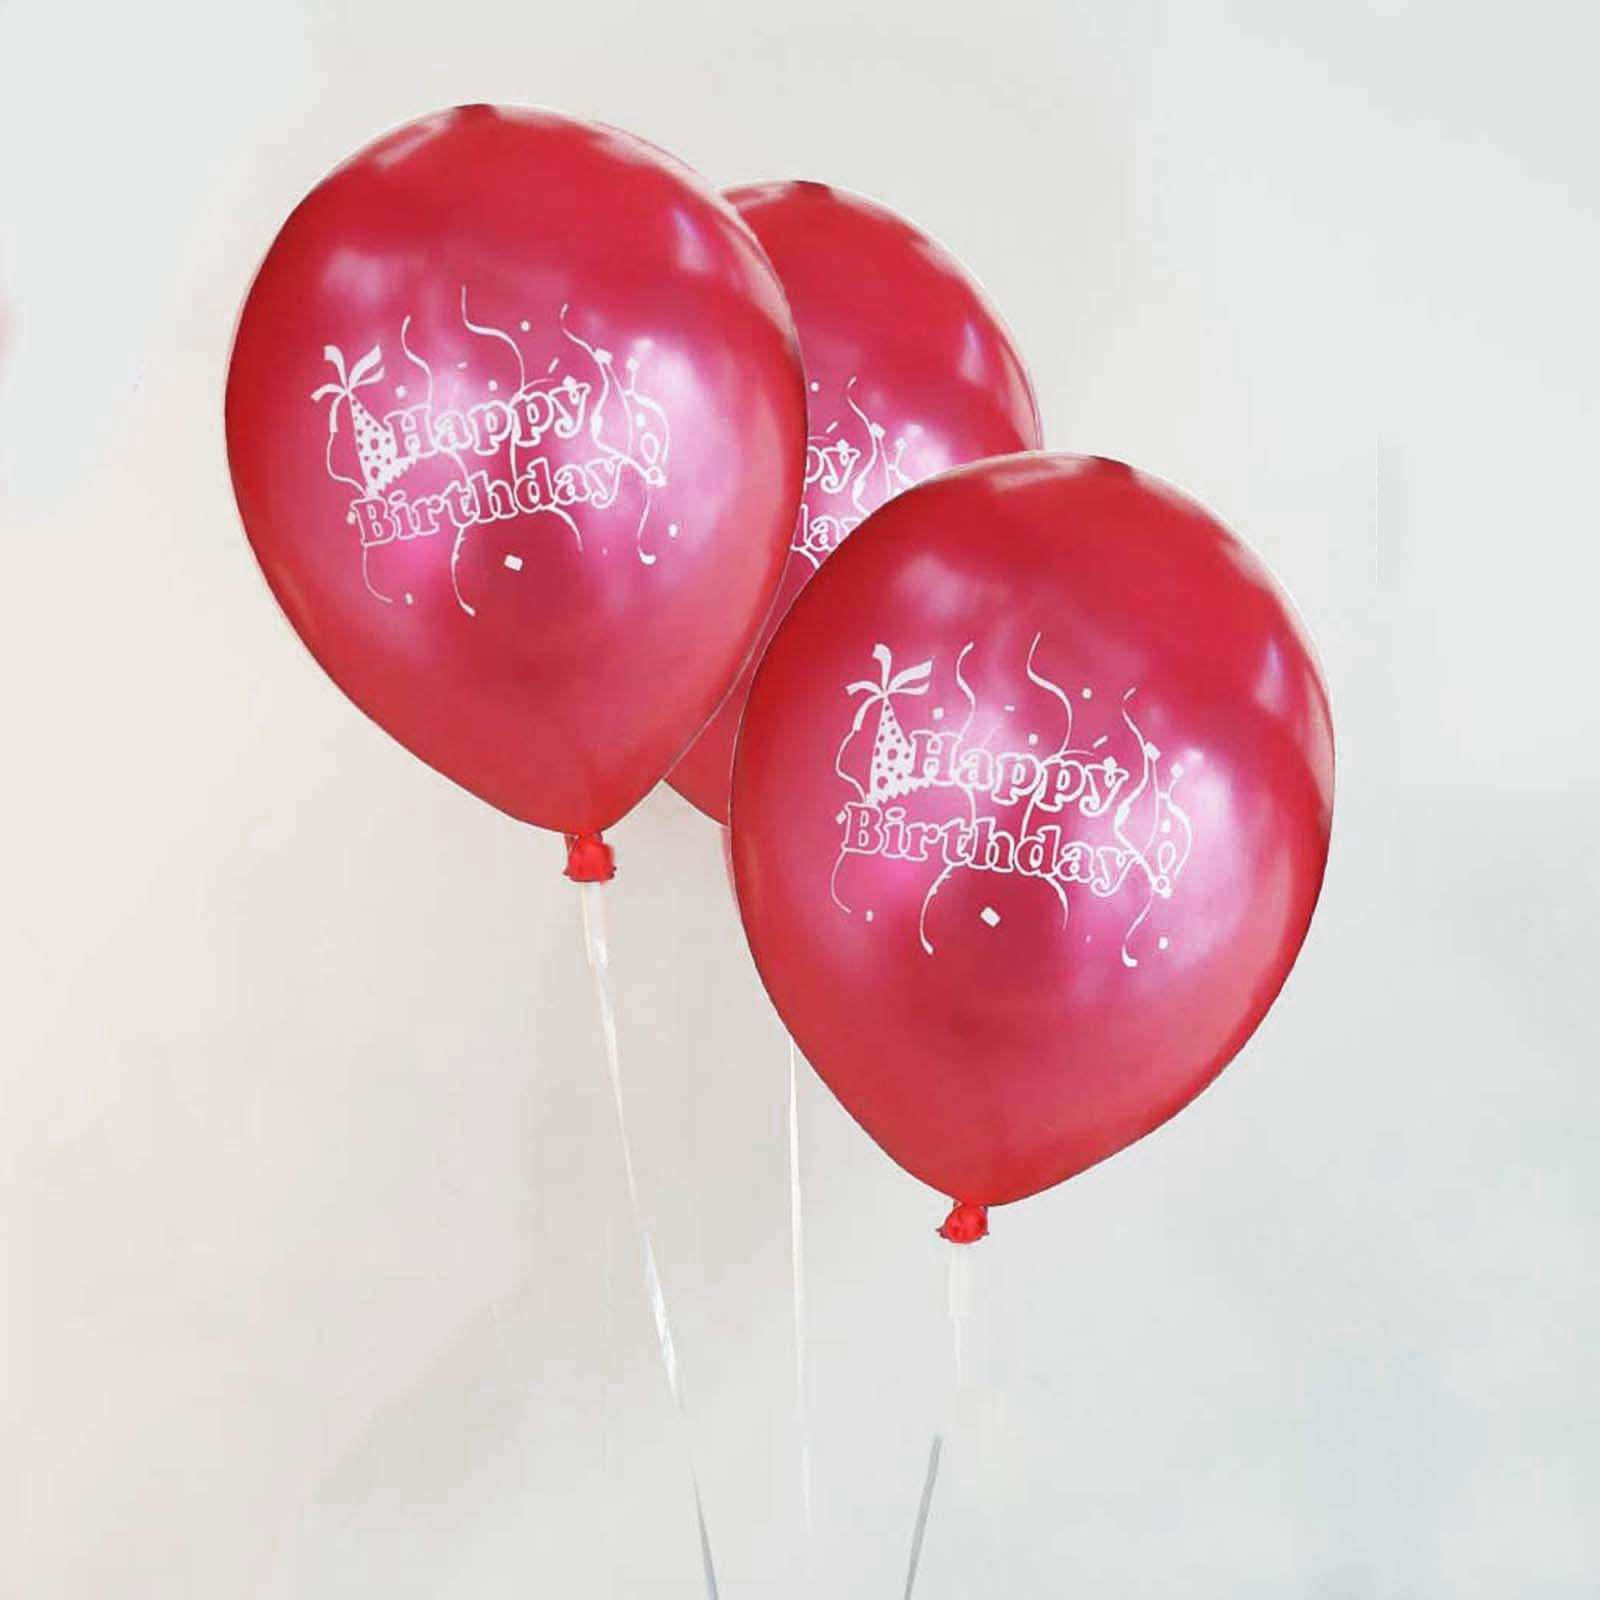 25 Pack 12 Red Metallic Latex Happy Birthday Balloons For Party ChairCoverFactory